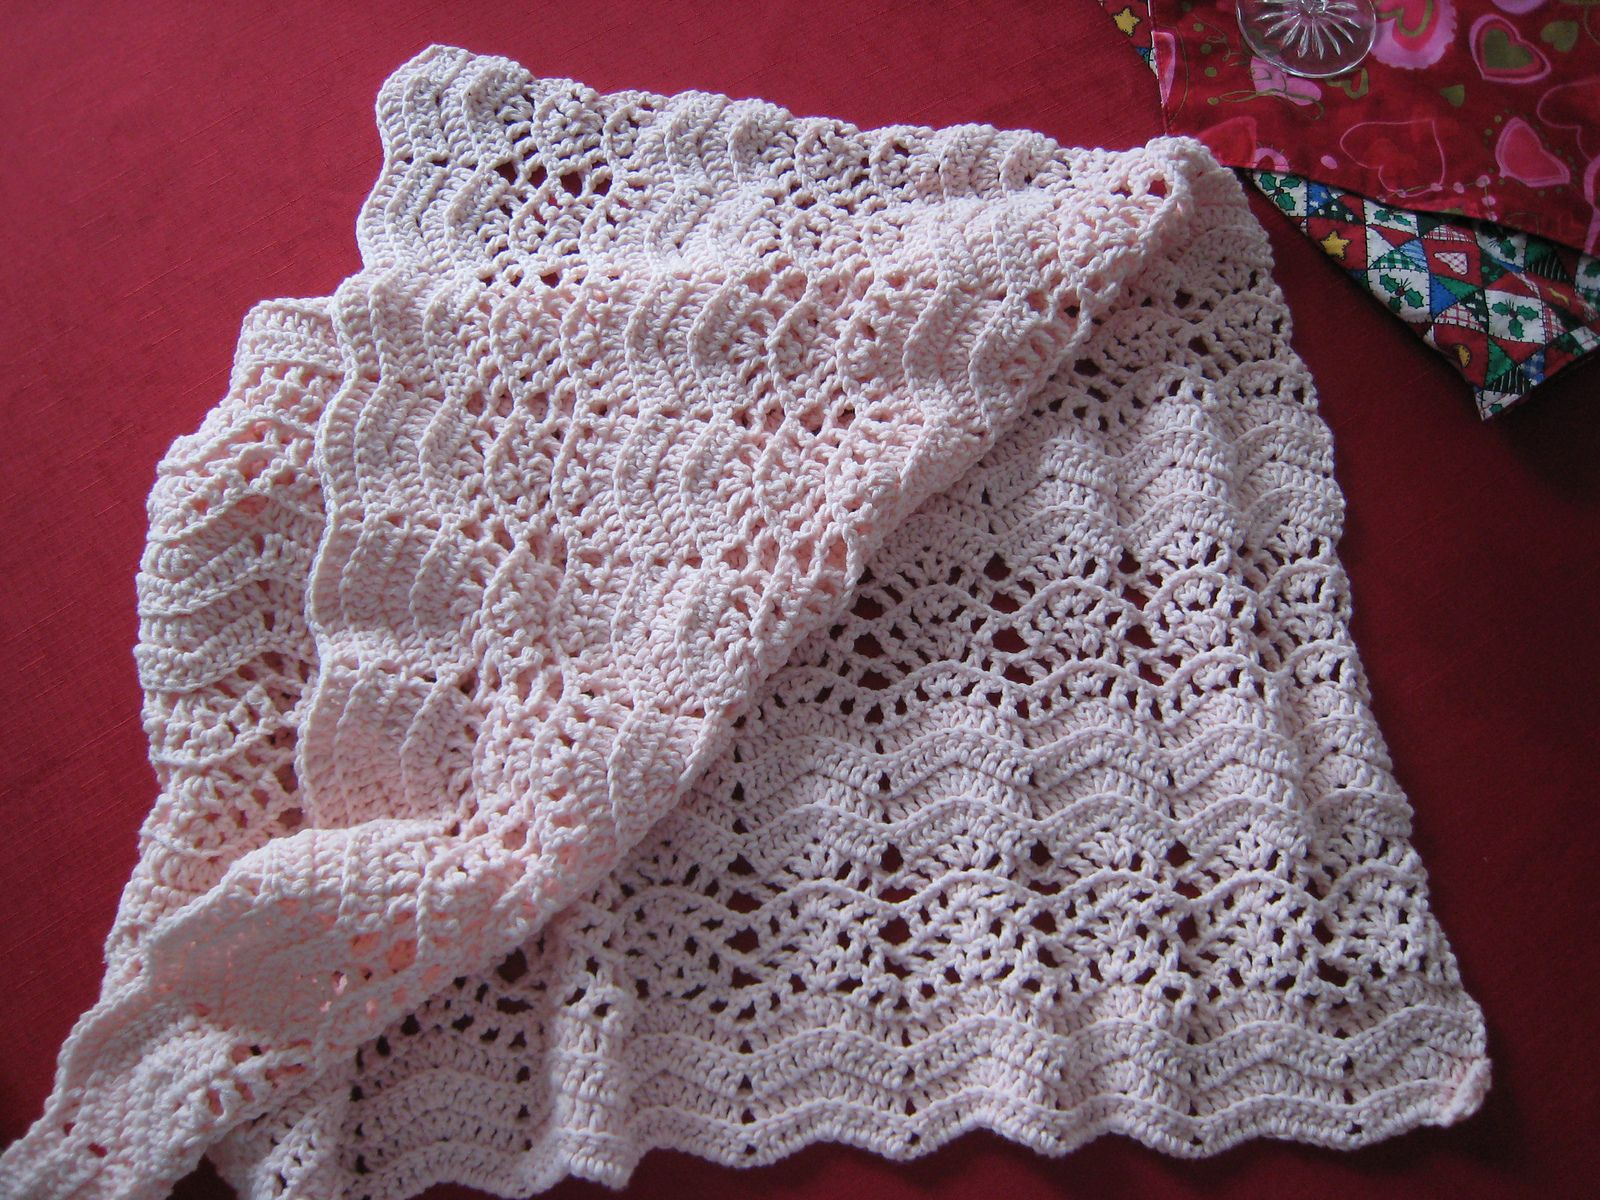 Lace Ripple Afghan Pattern By Coats Clark My To Do List